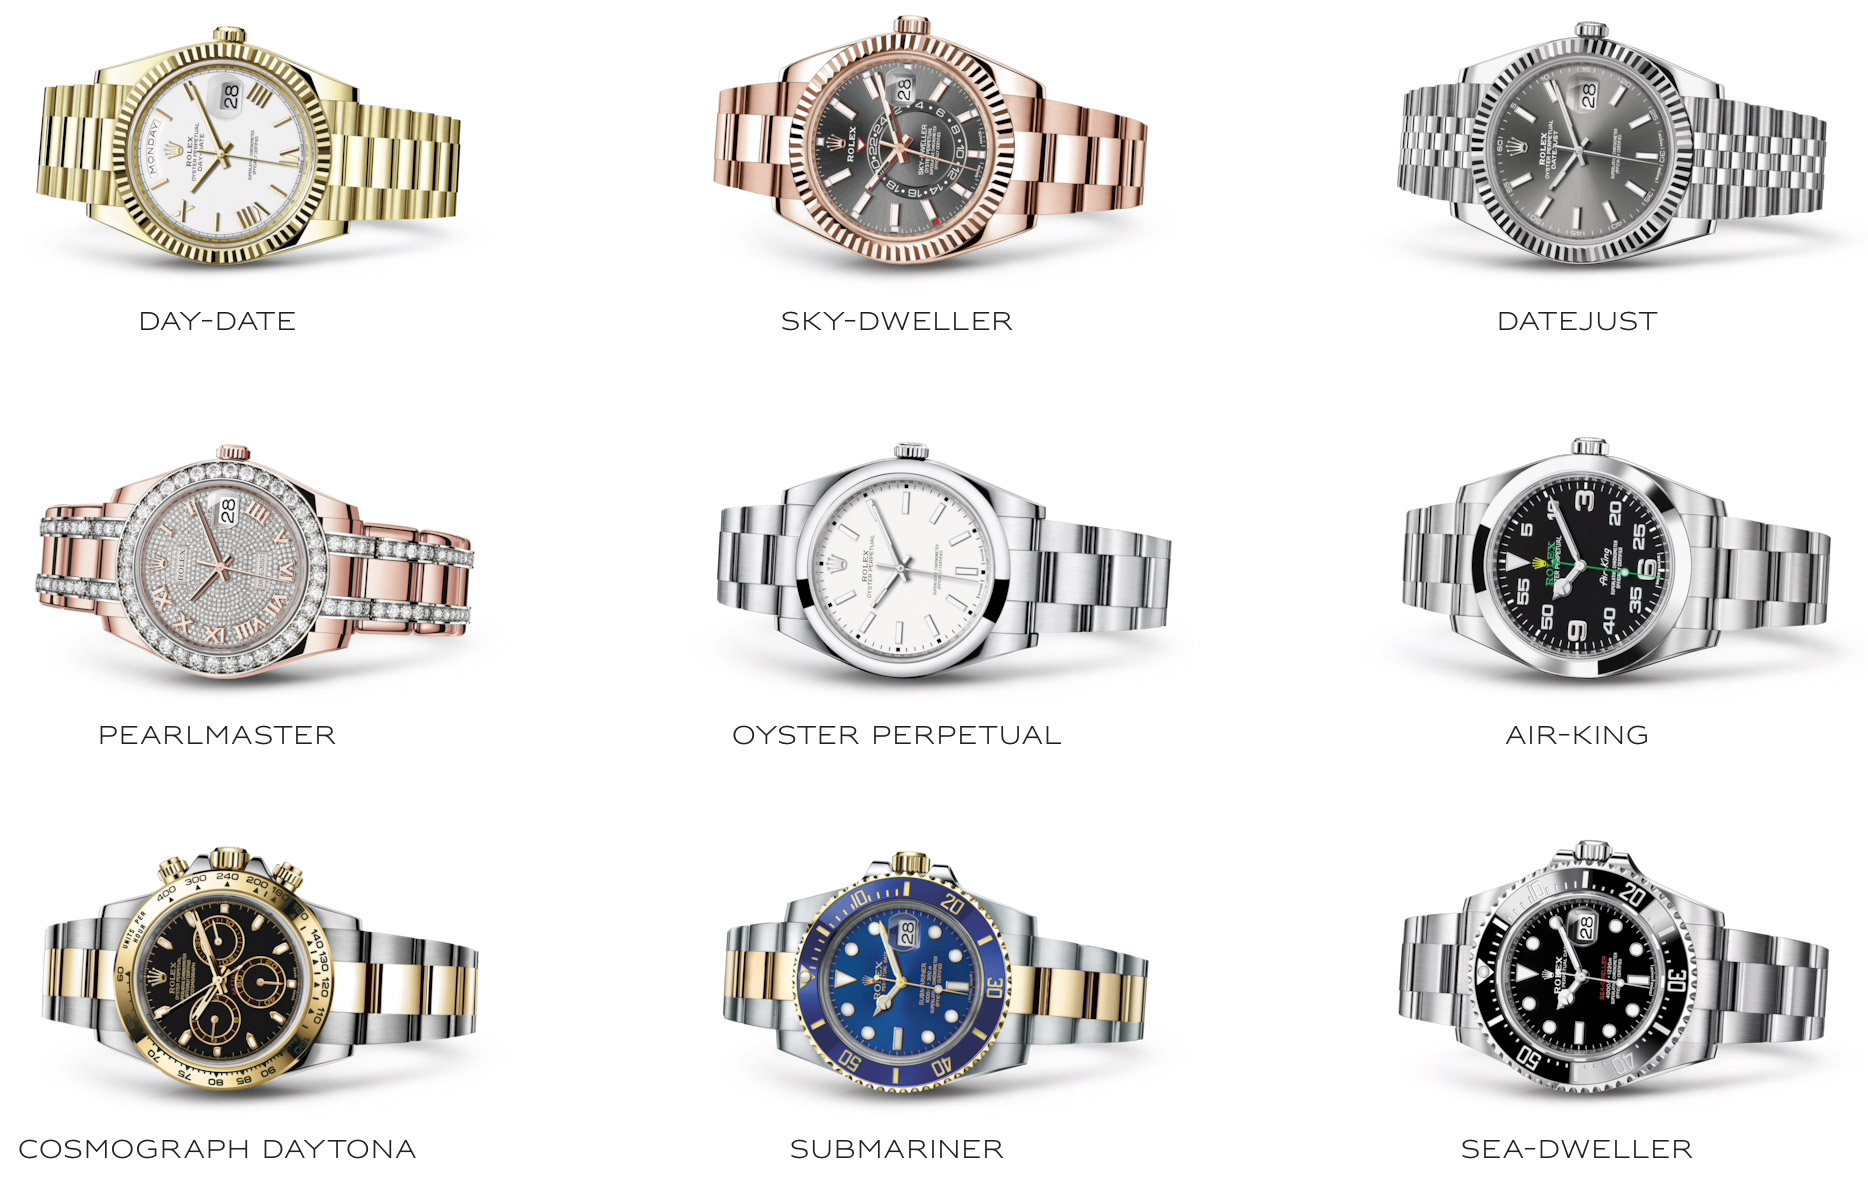 The Rolex Watches Collection